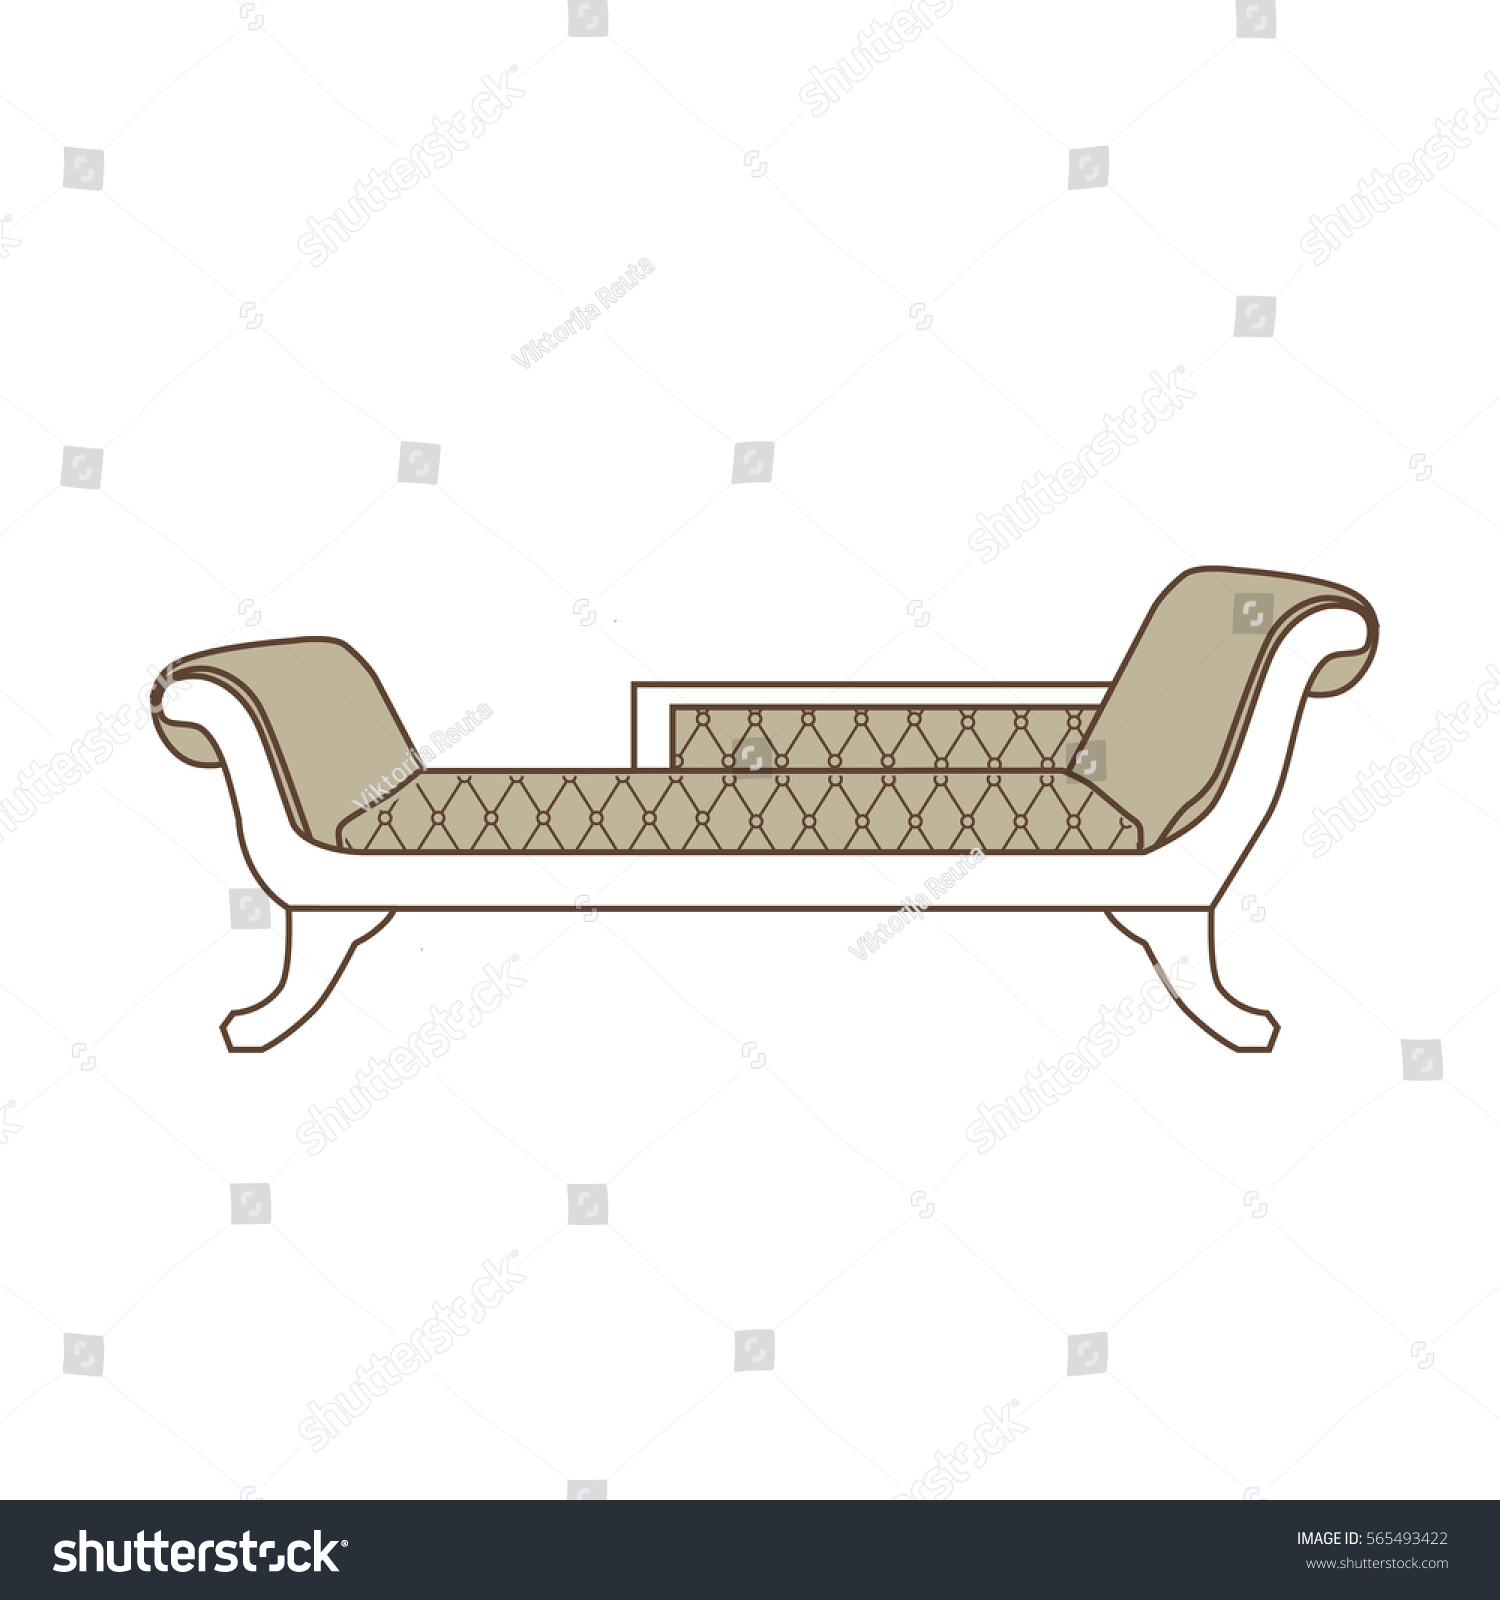 Sofa Set Vector Png Vector Illustration Vintage Sofa Divan Couch Stock Vector Royalty